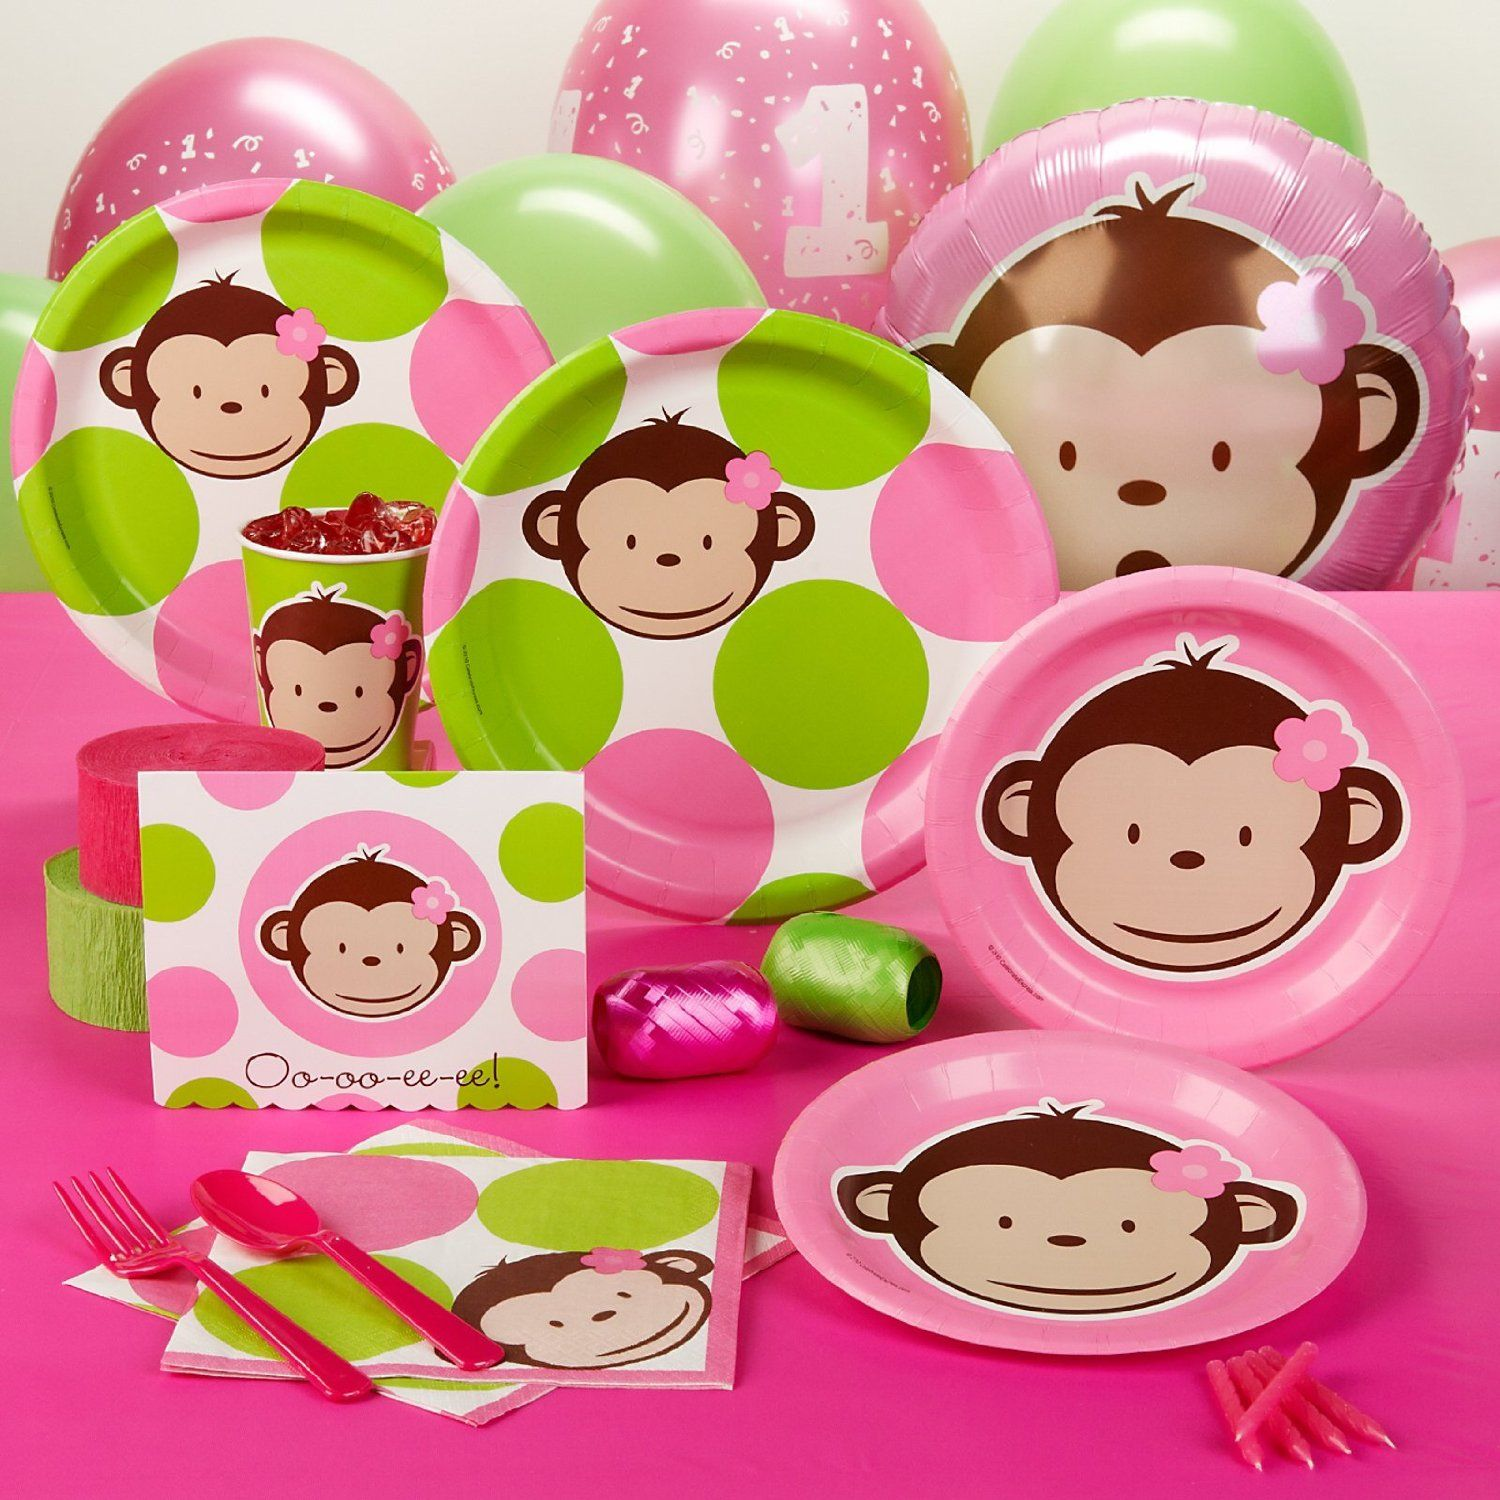 mod monkey pink party supplies Pinterest Google